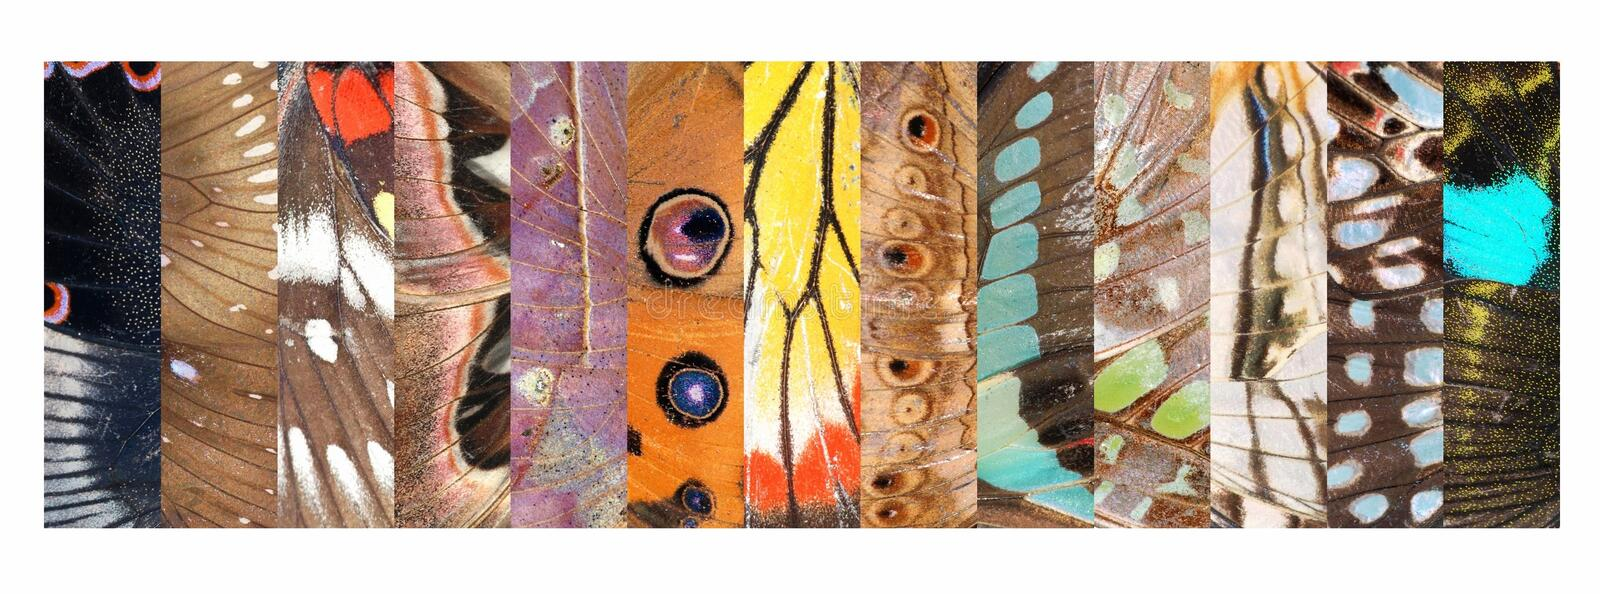 butterfly wing pattern detail collection stock photos